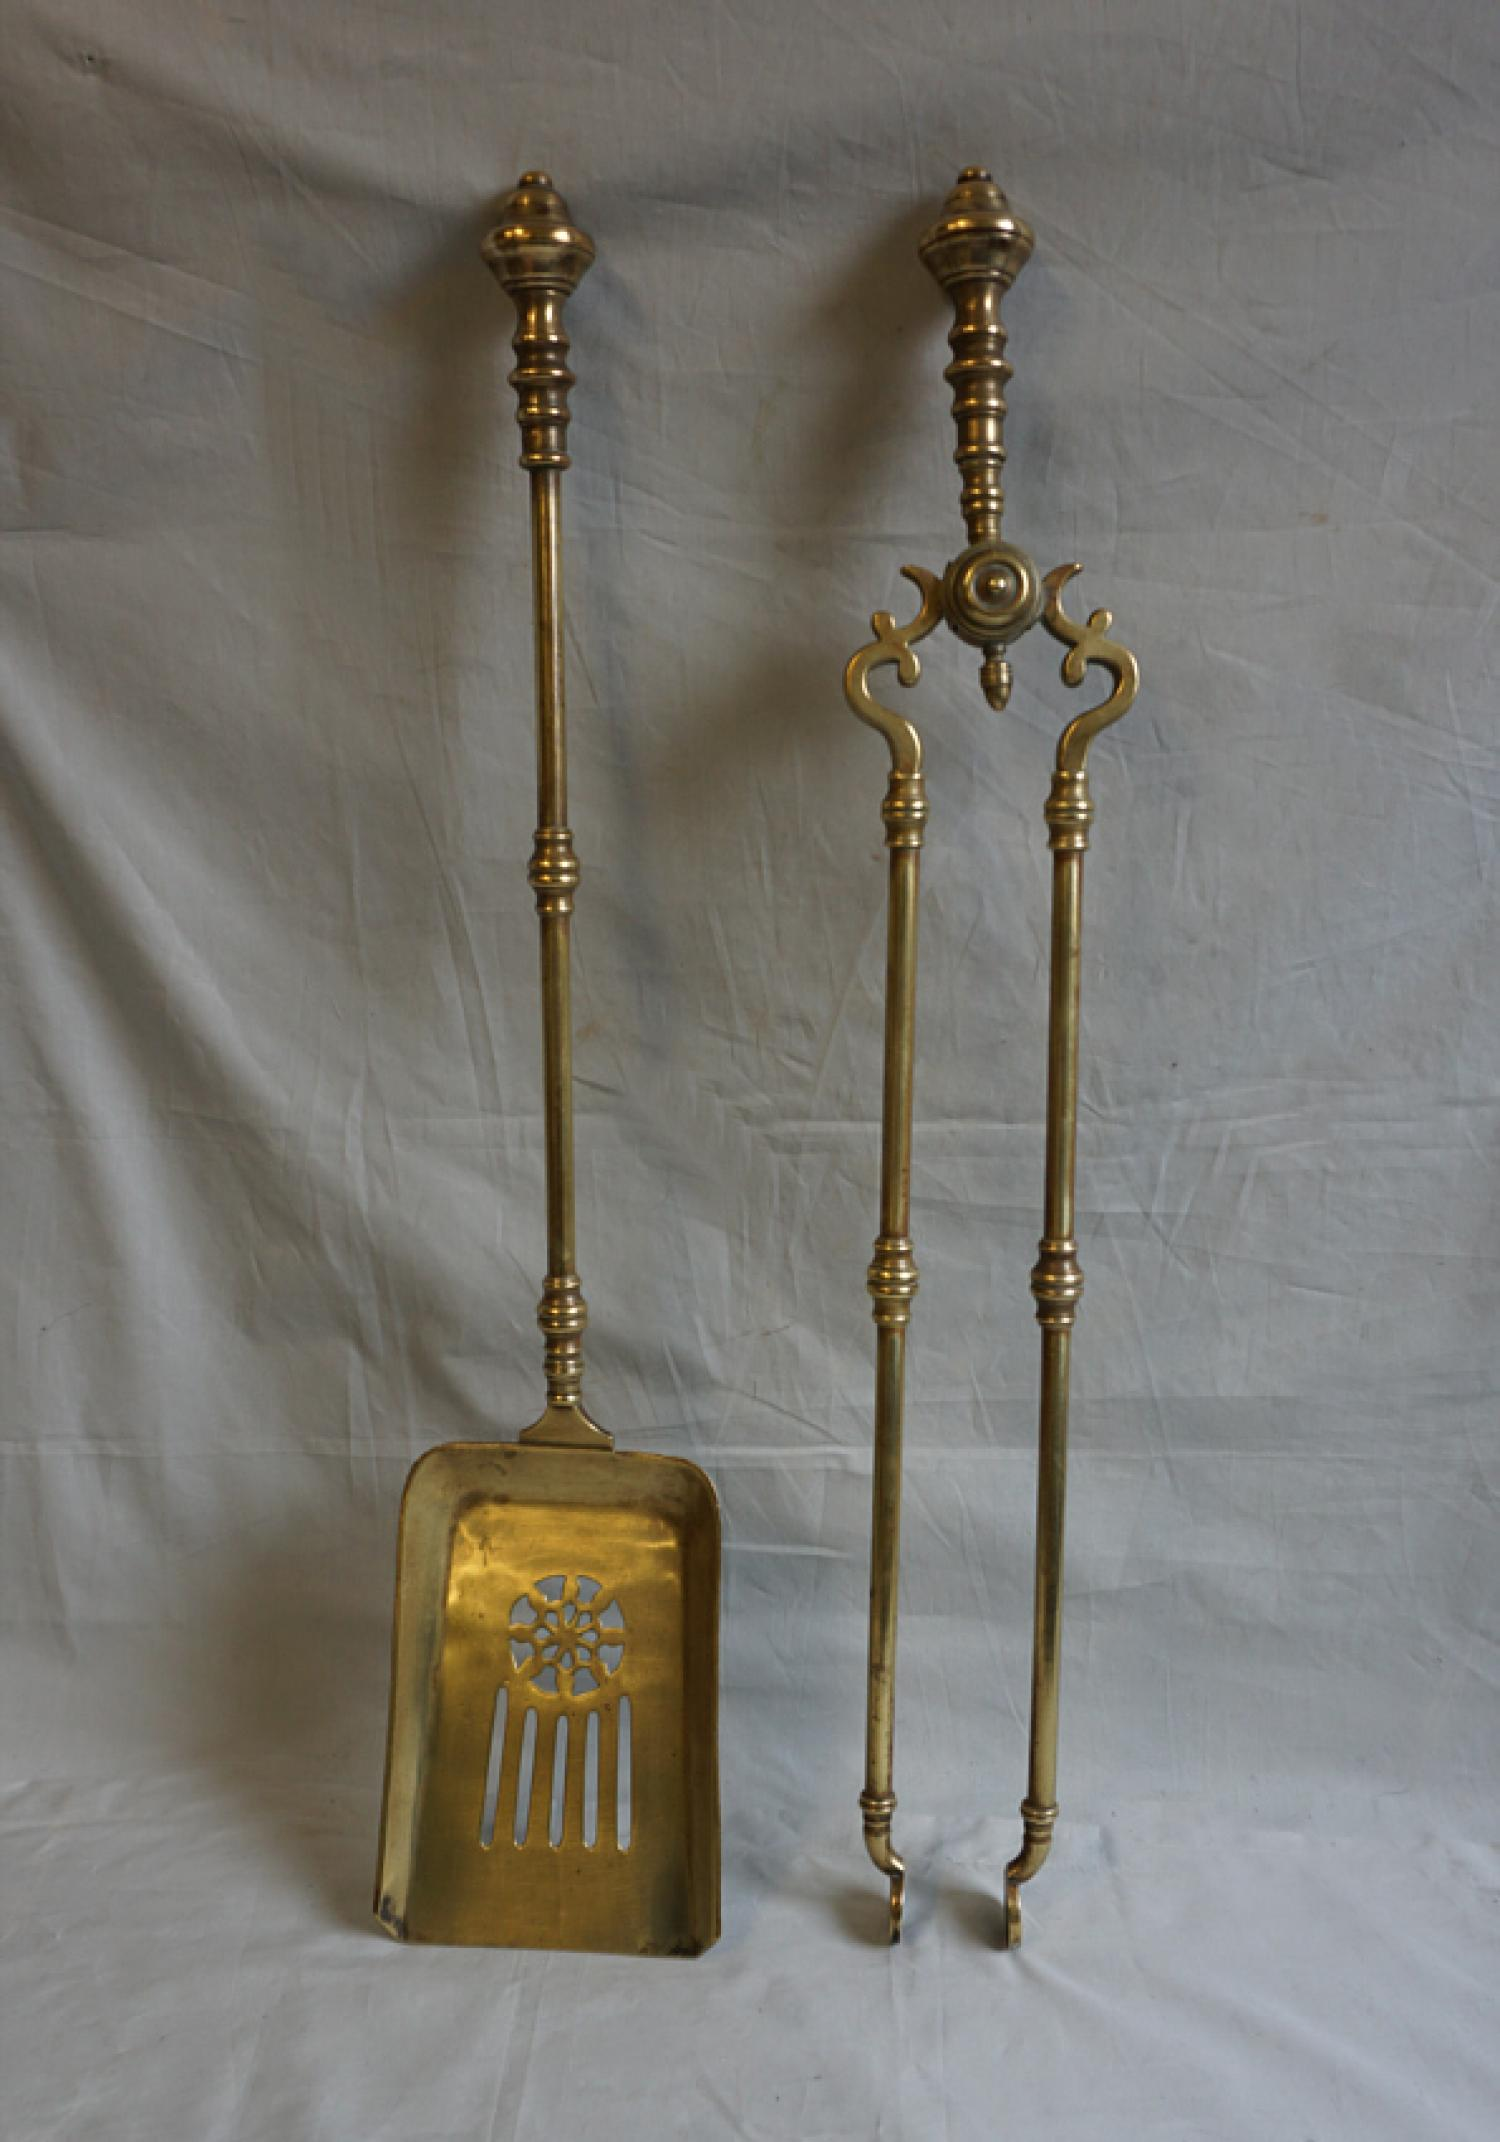 Brass Dutch or English fireplace shovel and tongs c1770